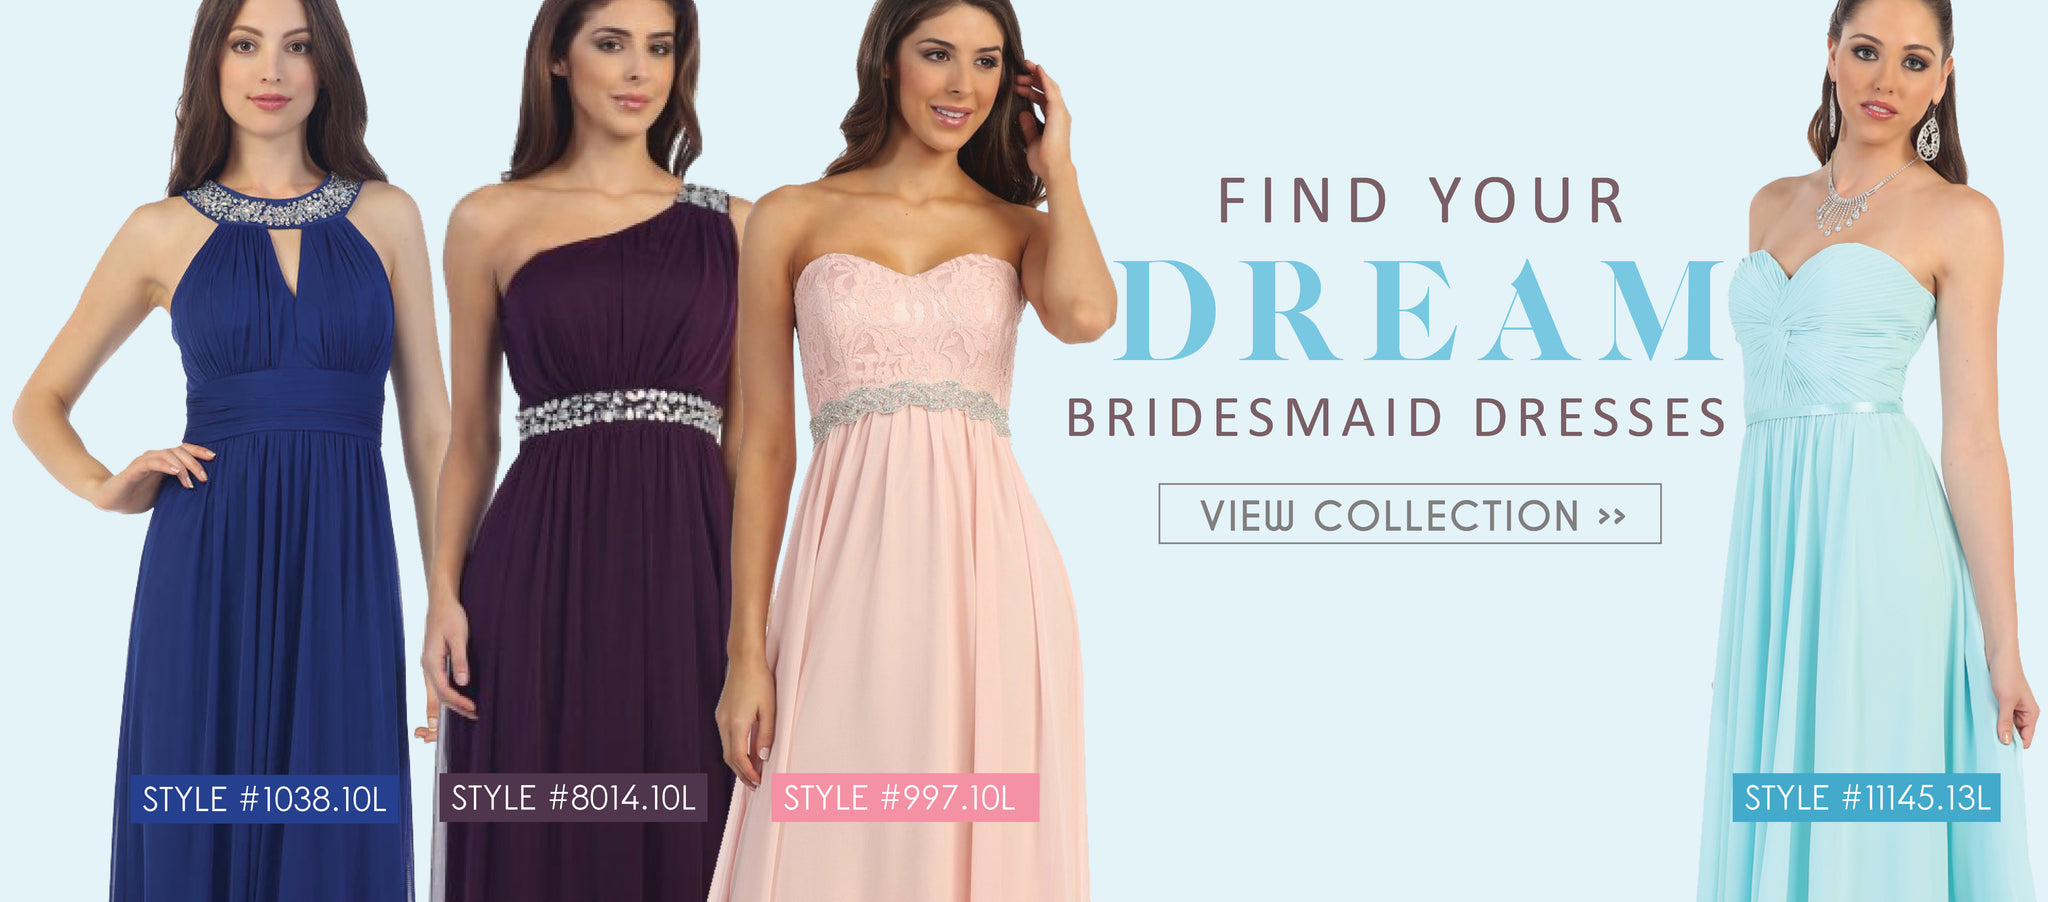 View our collection of long and short bridesmaid dresses in lethbridge, ontario Canada. We carry bridesmaid dresses in a variety of styles like flow, off shoulder, fitted, strapless styles. The evening dresses come in a variety of colours like black, white, red, coral, blush pink, royal blue, aqua, navy, and burgundy.